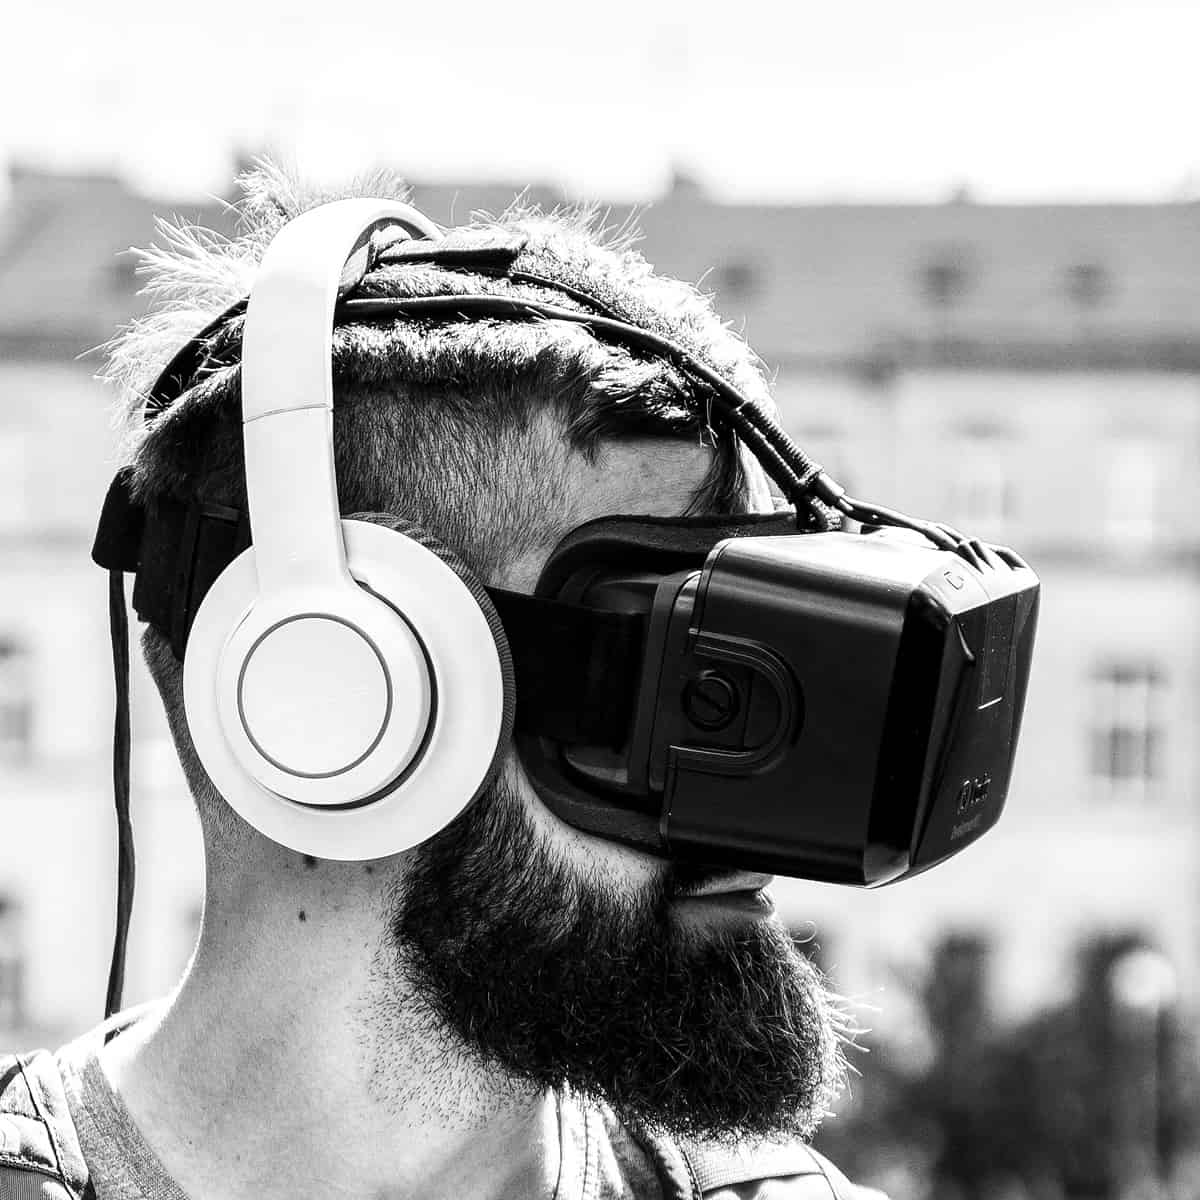 A photo of a man wearing headphones and a virtual reality head-mounted display.